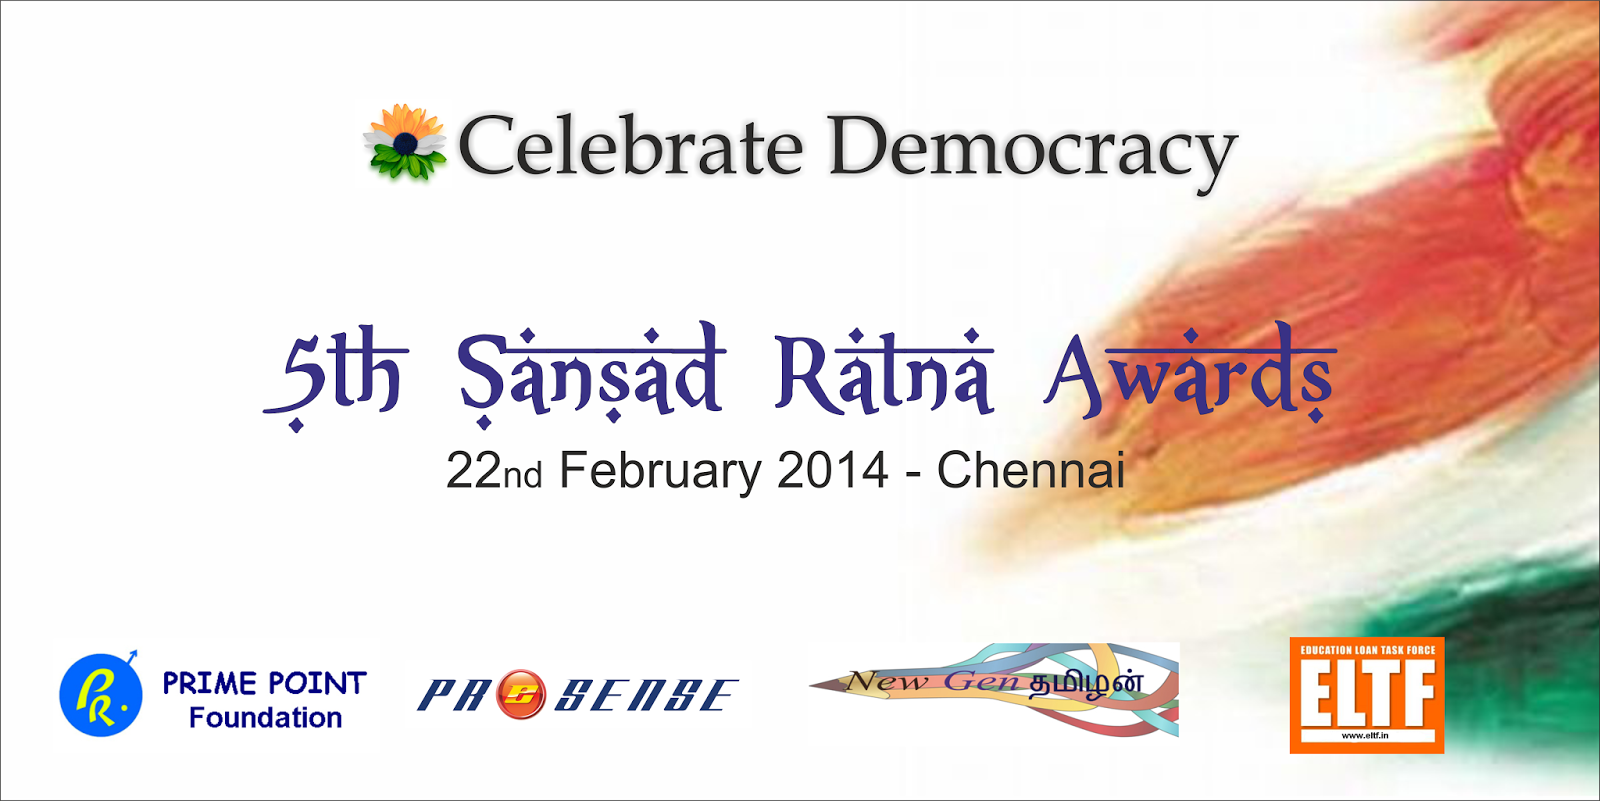 Celebrate Democracy - Sansad Ratna 2014 Awards